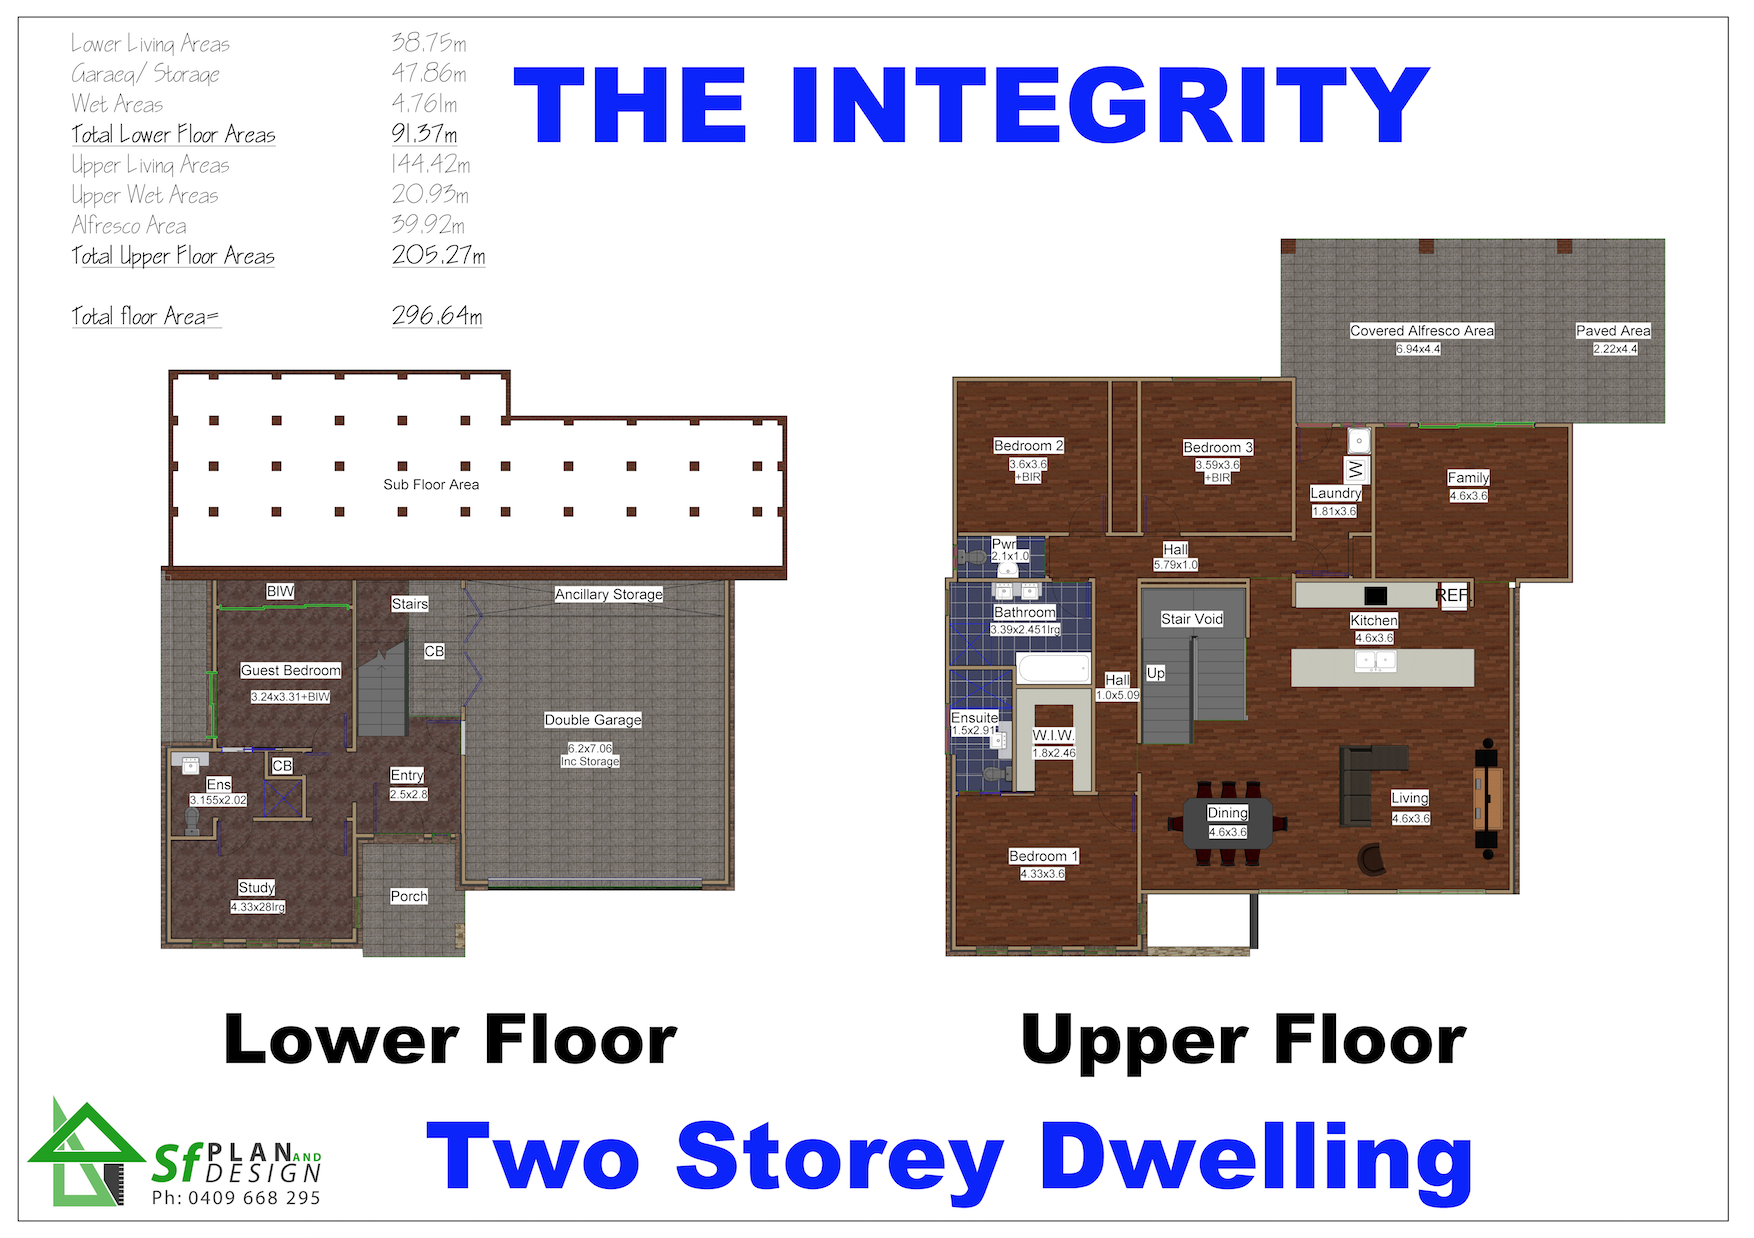 Homes Of Integrity Floor Plans: Our Home Design